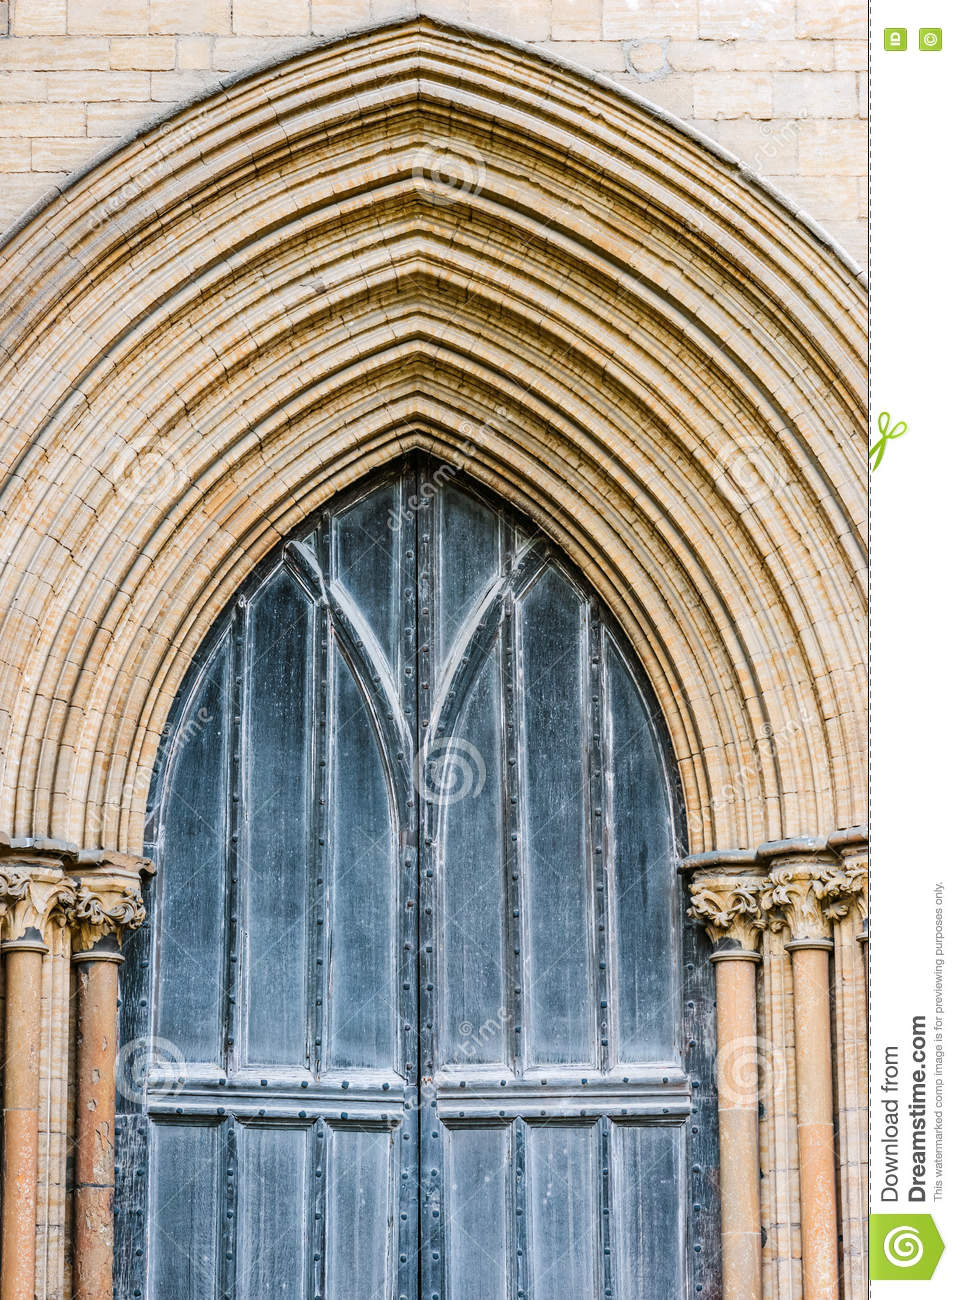 Peterborough Cathedral front wooden gate detail entrance outdoors